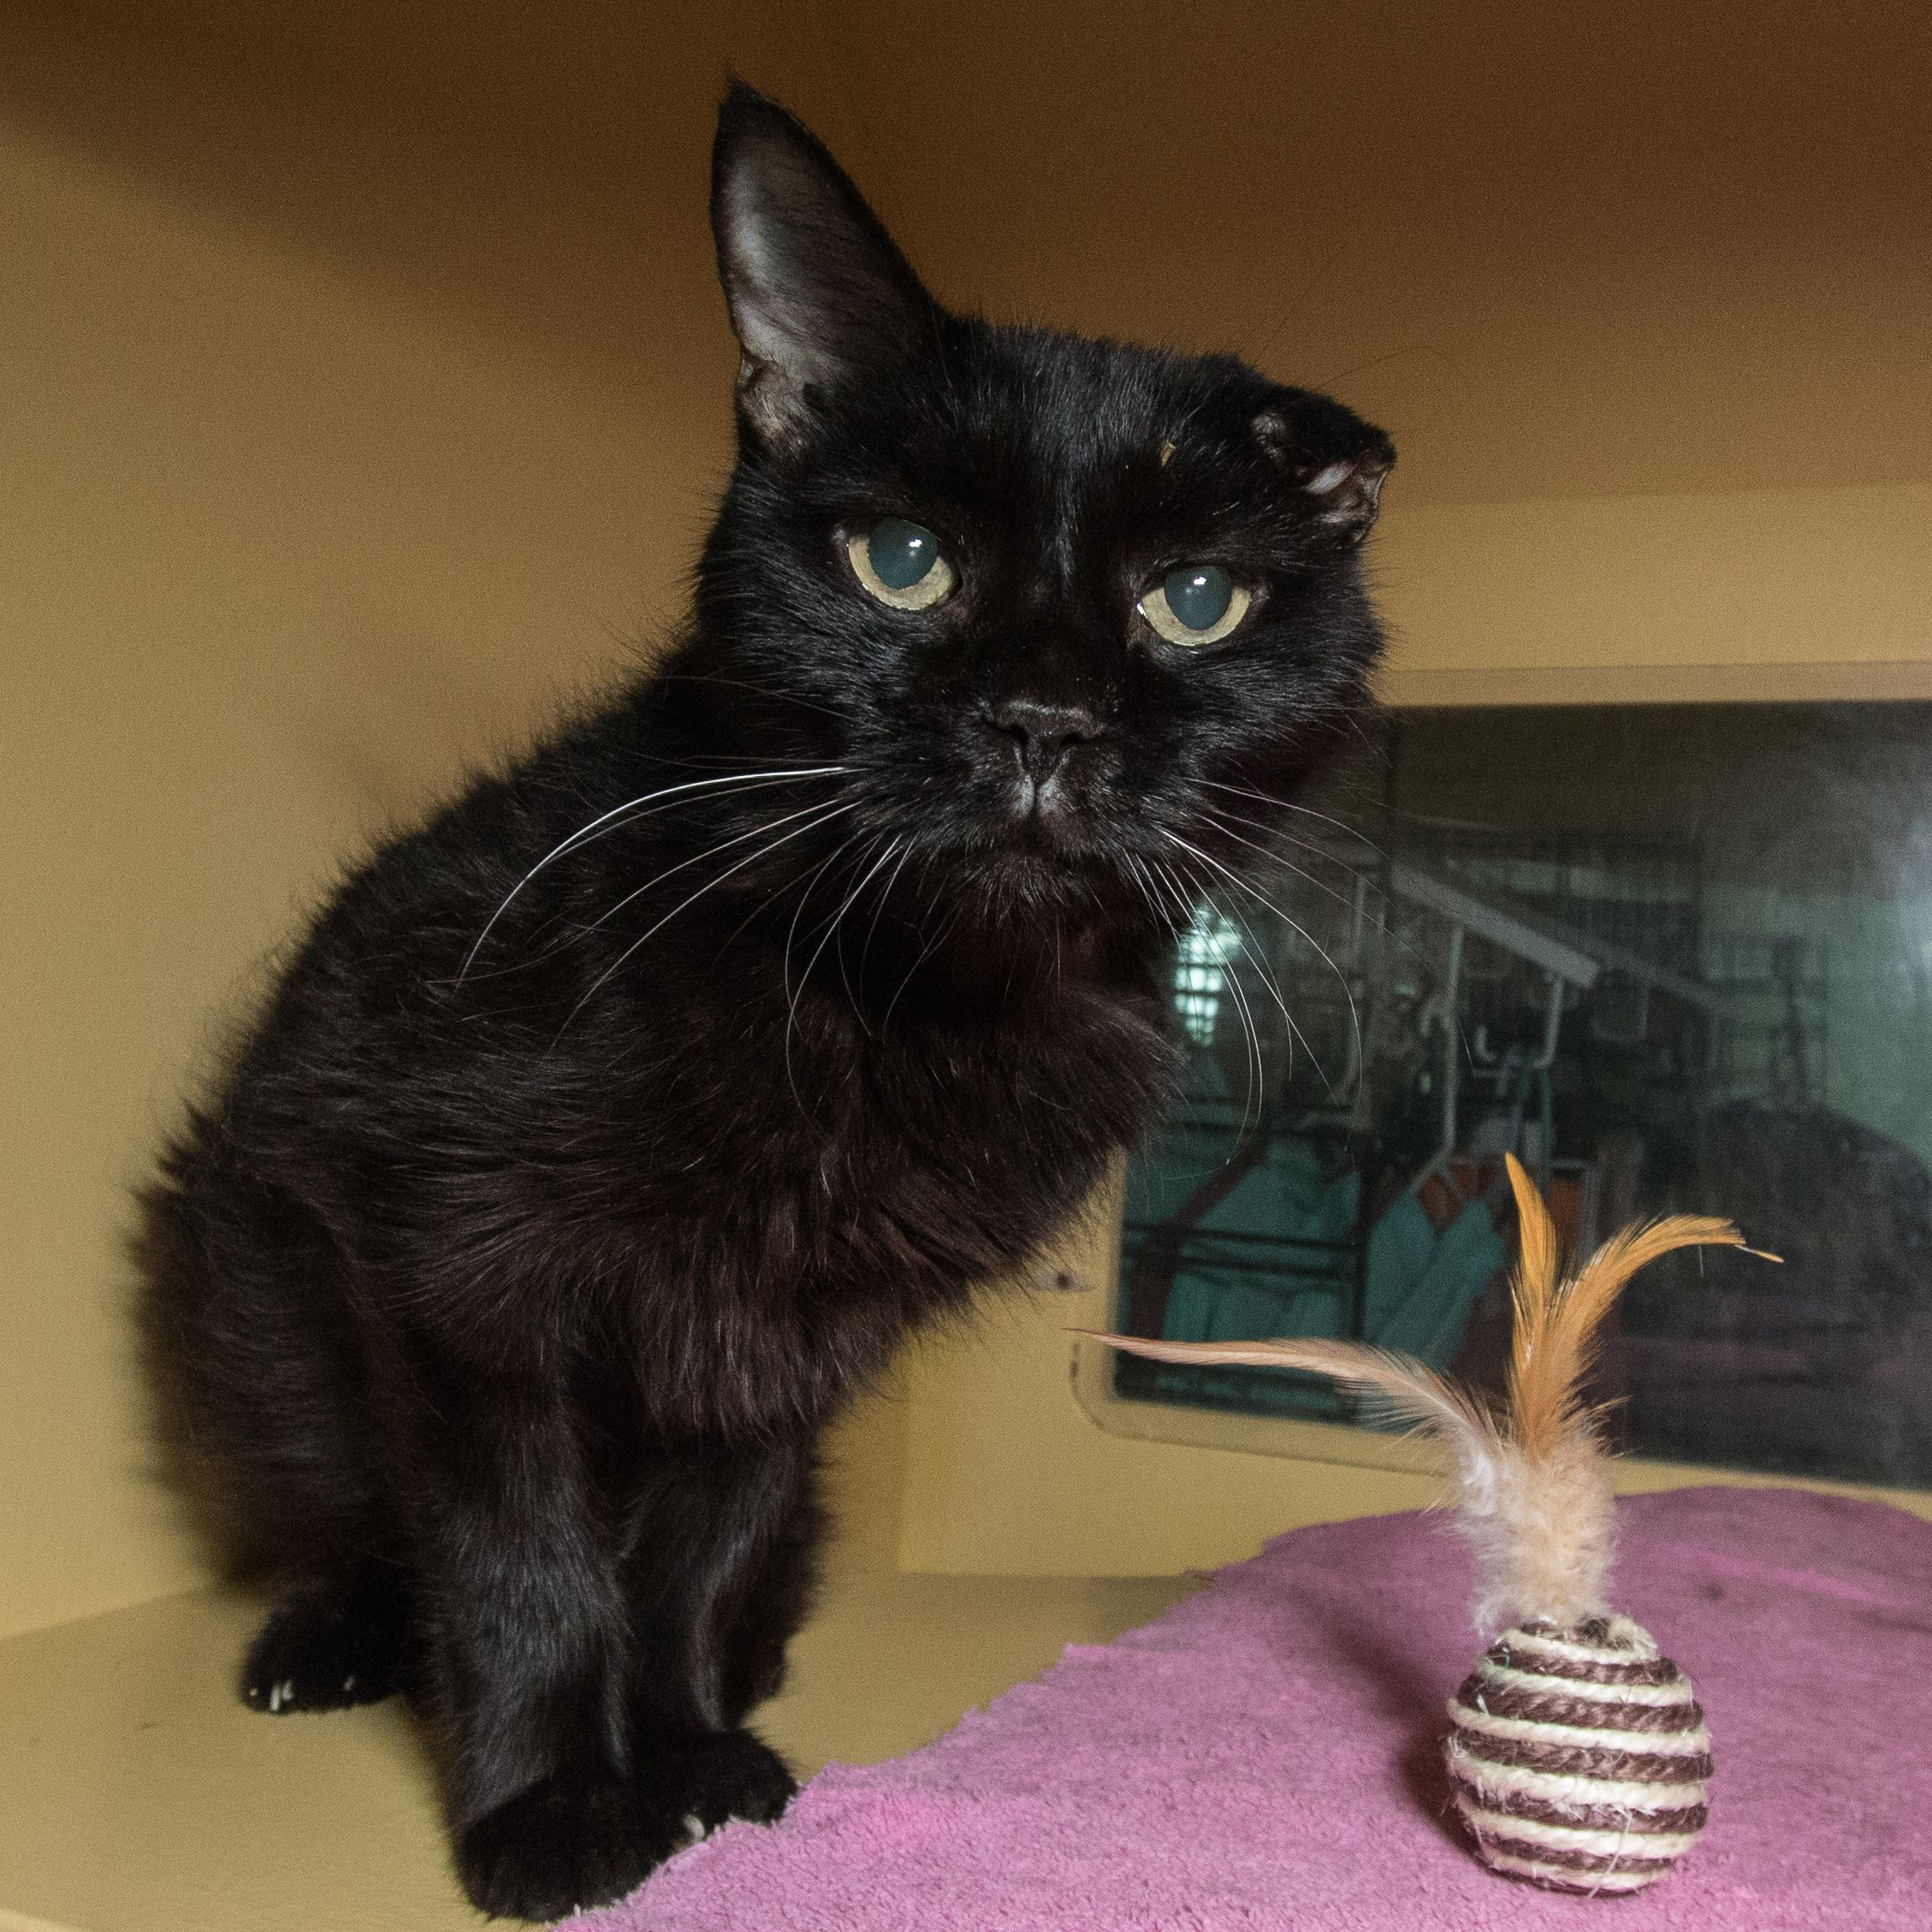 KITTY is an adoptable domestic short hair searching for a